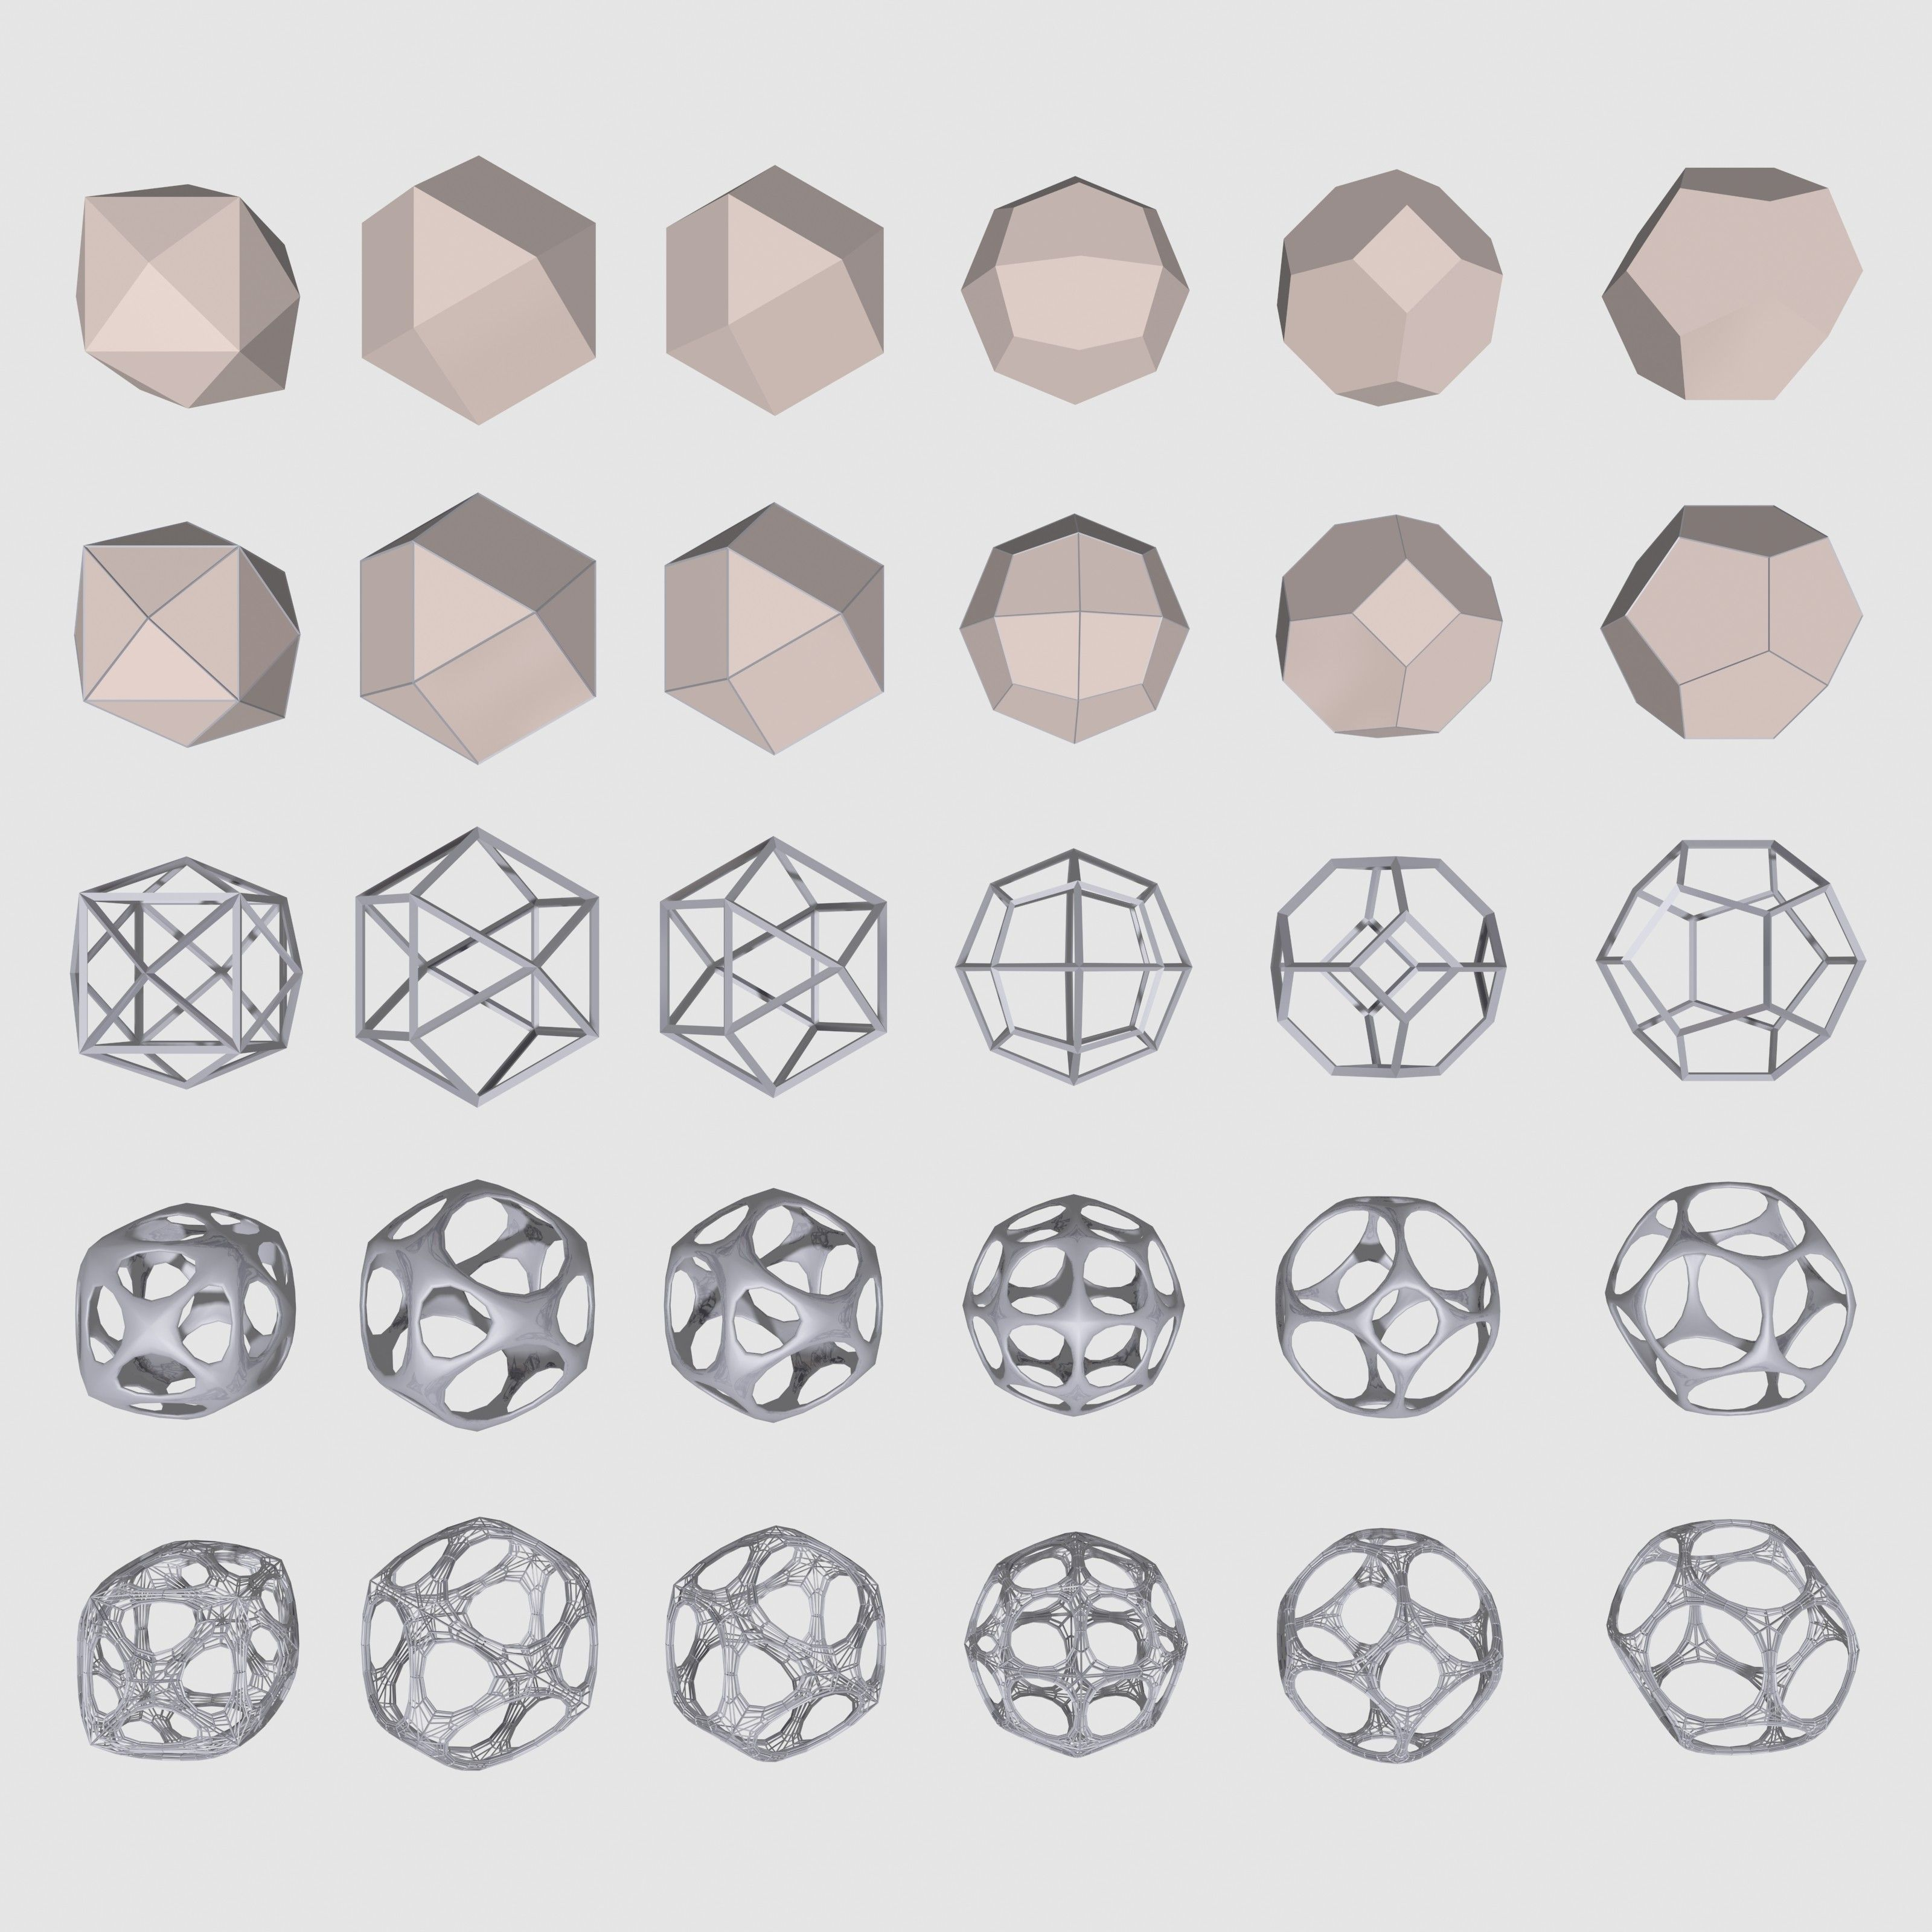 geometrical mc 02 shapes 3d max | 3d models | Pinterest | 3d ...